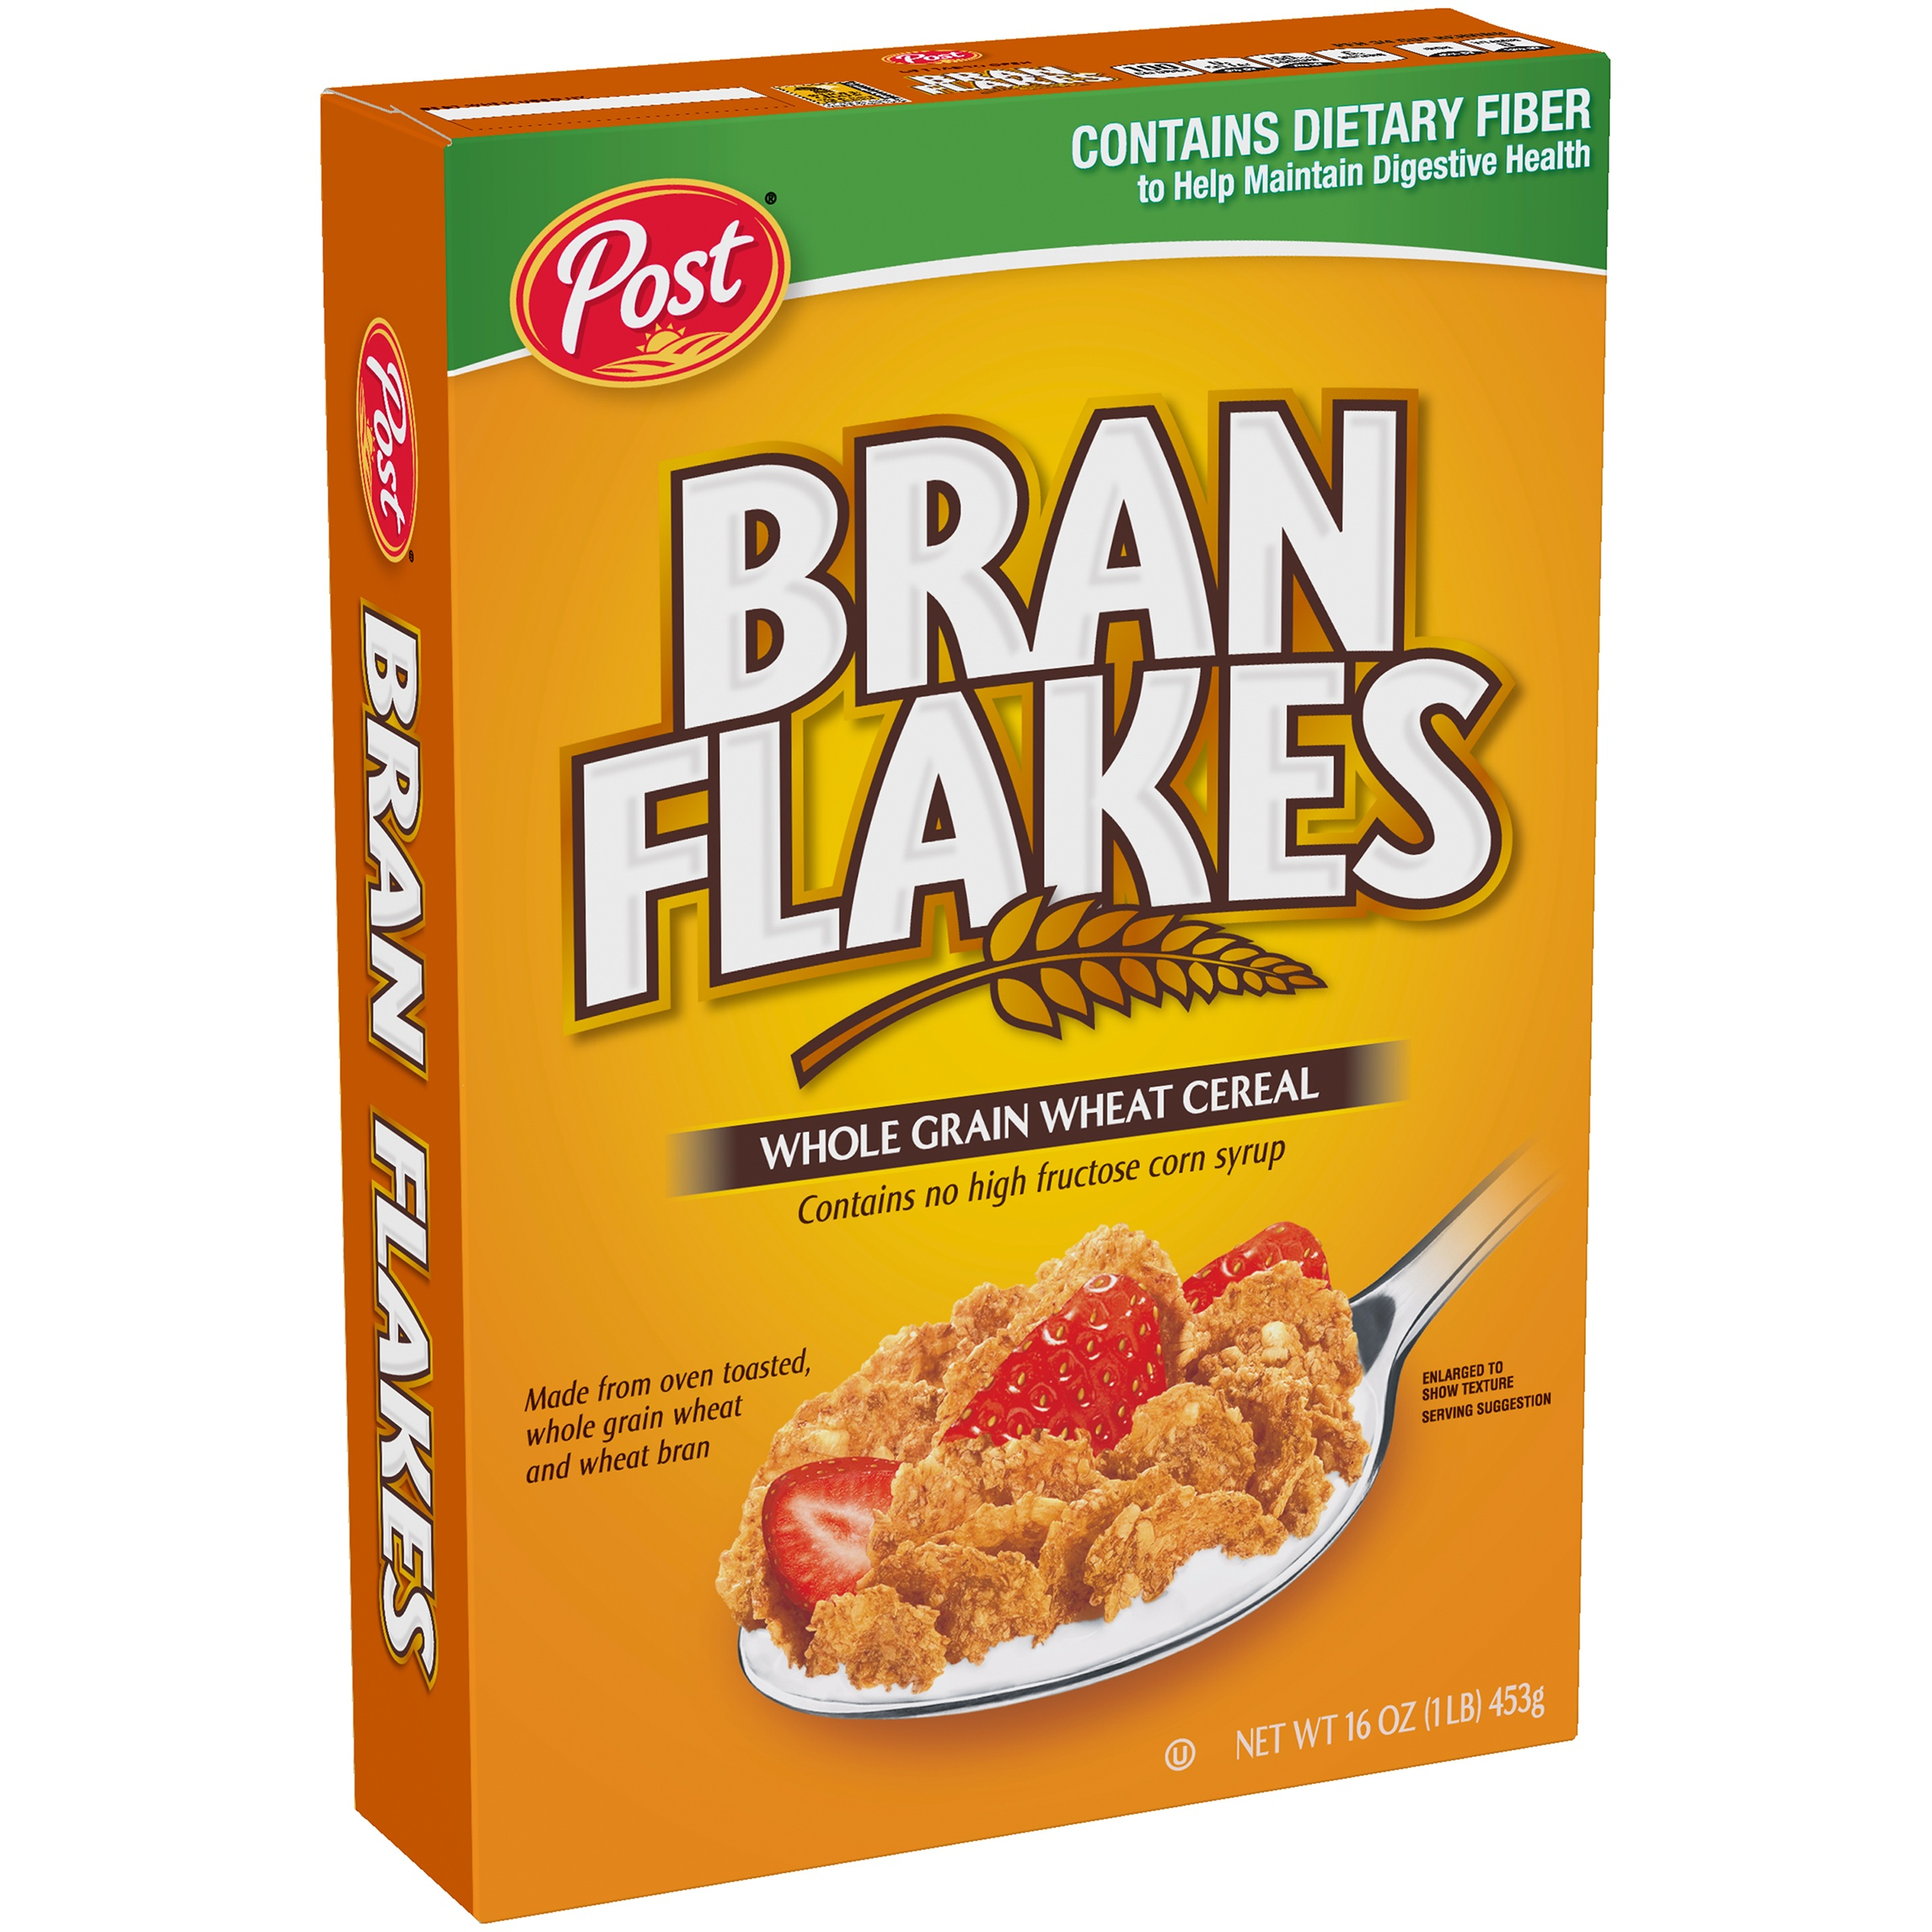 Post® Bran Flakes Whole Grain Wheat Cereal 16 oz. Box